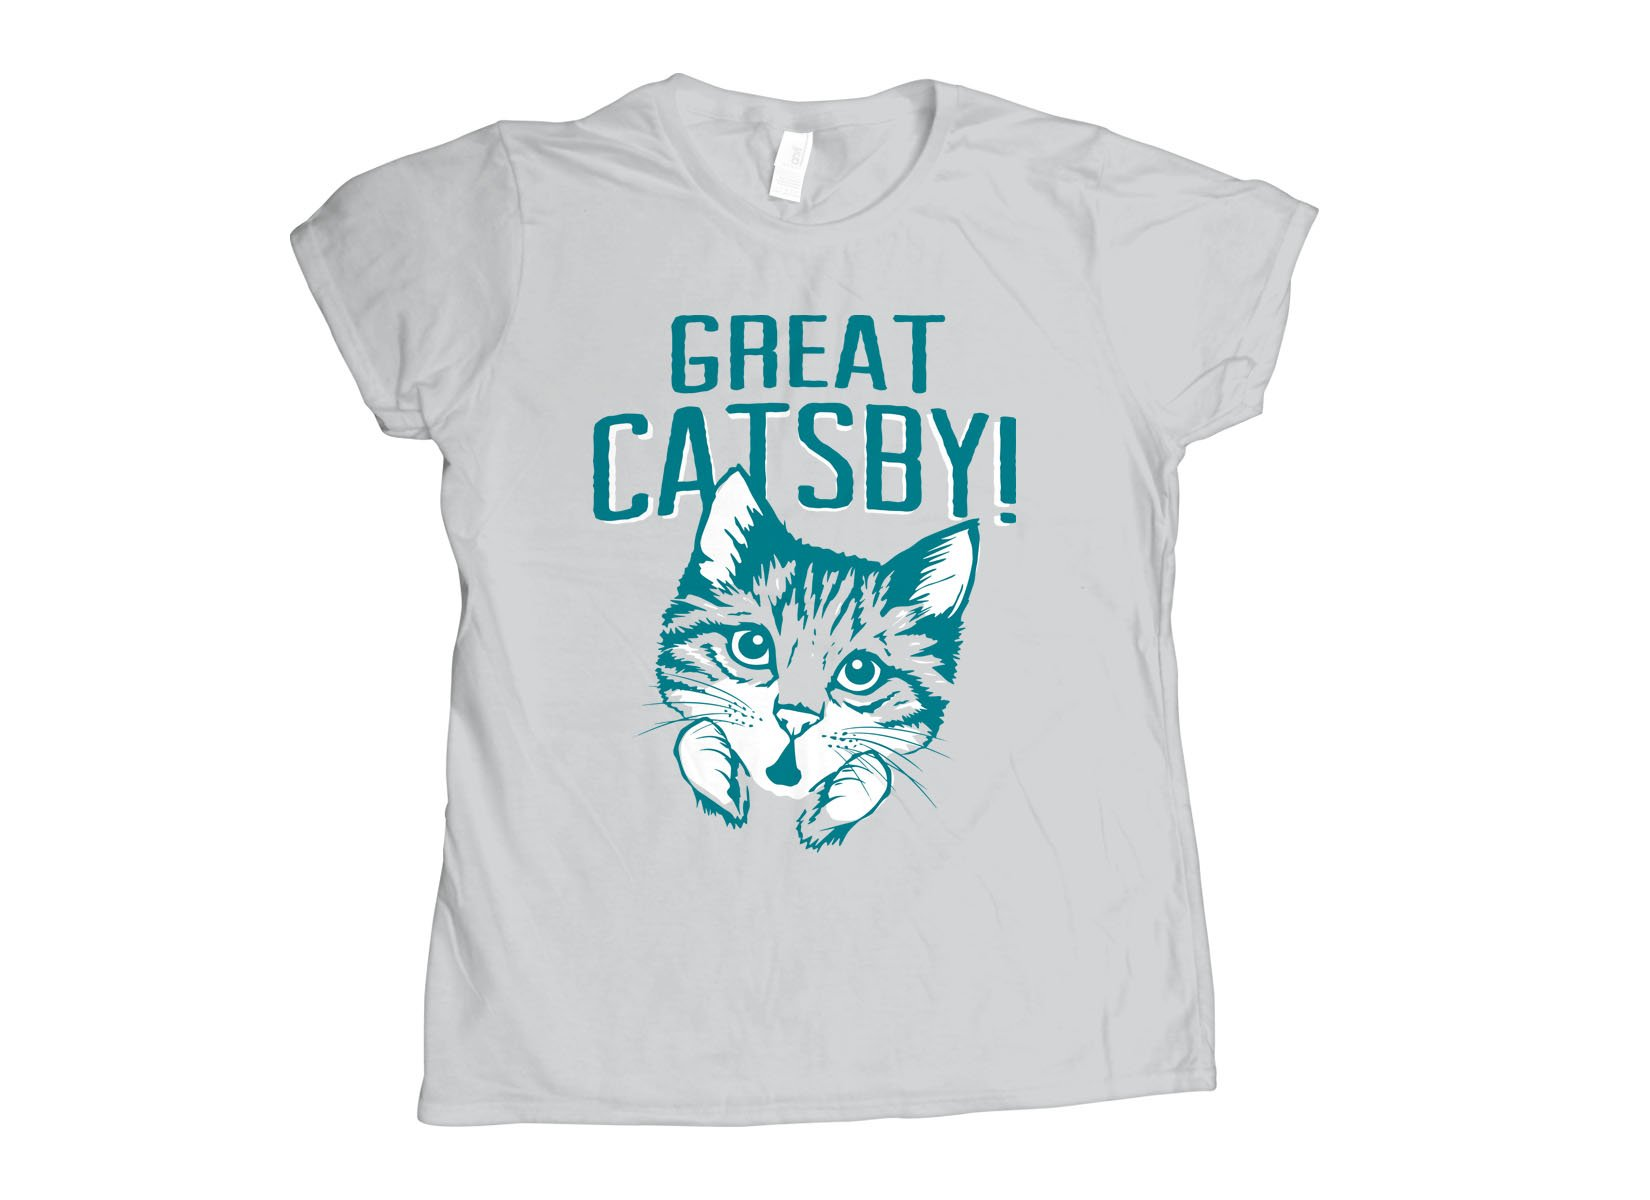 Great Catsby! on Womens T-Shirt